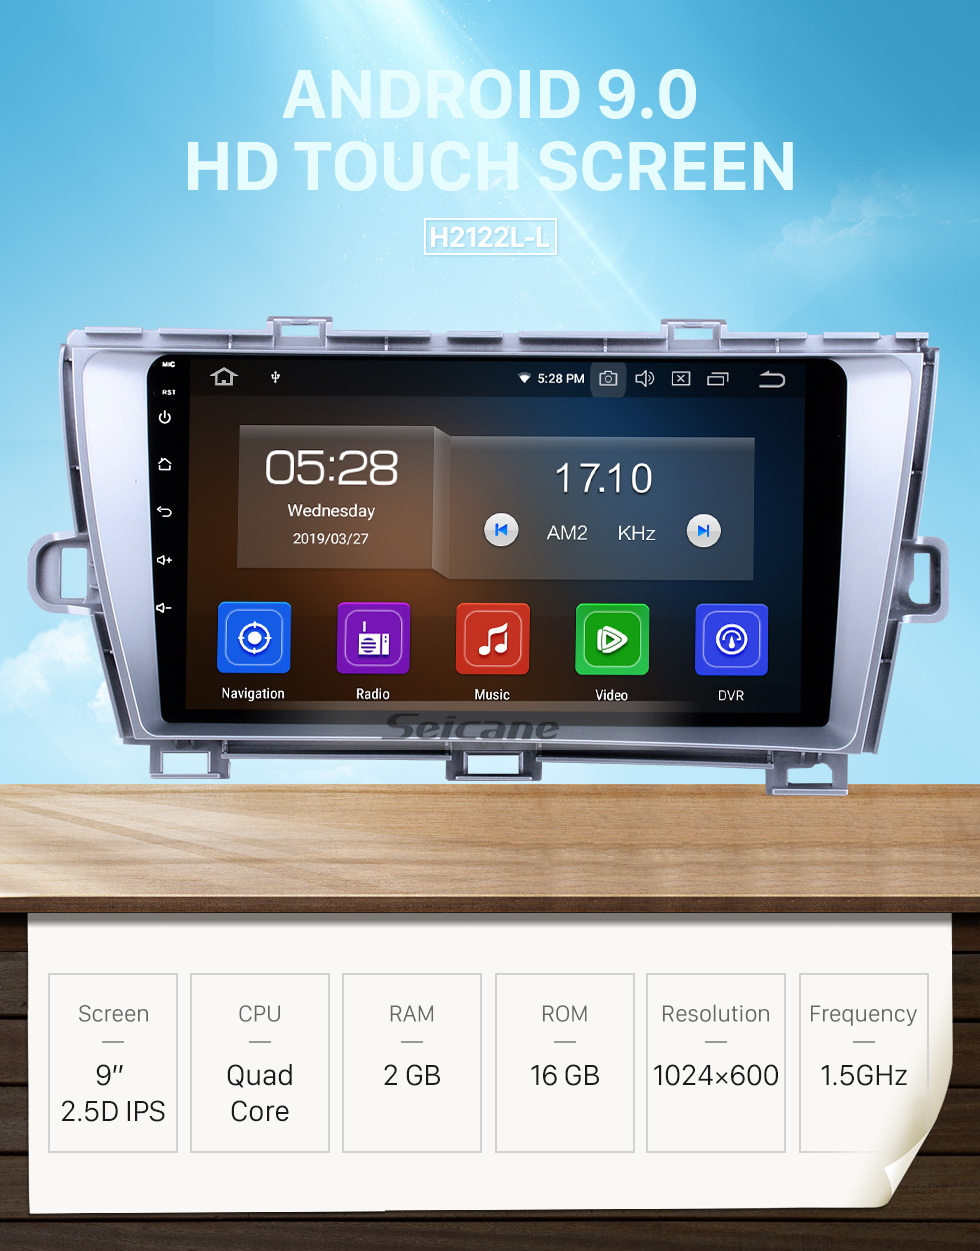 Seicane 9 inch Android 9.0 HD 1024*600 Touch Screen Radio GPS Car A/V System for 2009-2013 Toyota Prius Left hand driver Bluetooth Music 4G WiFi Mirror Link OBD2 Rearview Camera DVD player Steering Wheel Control AUX DVR USB